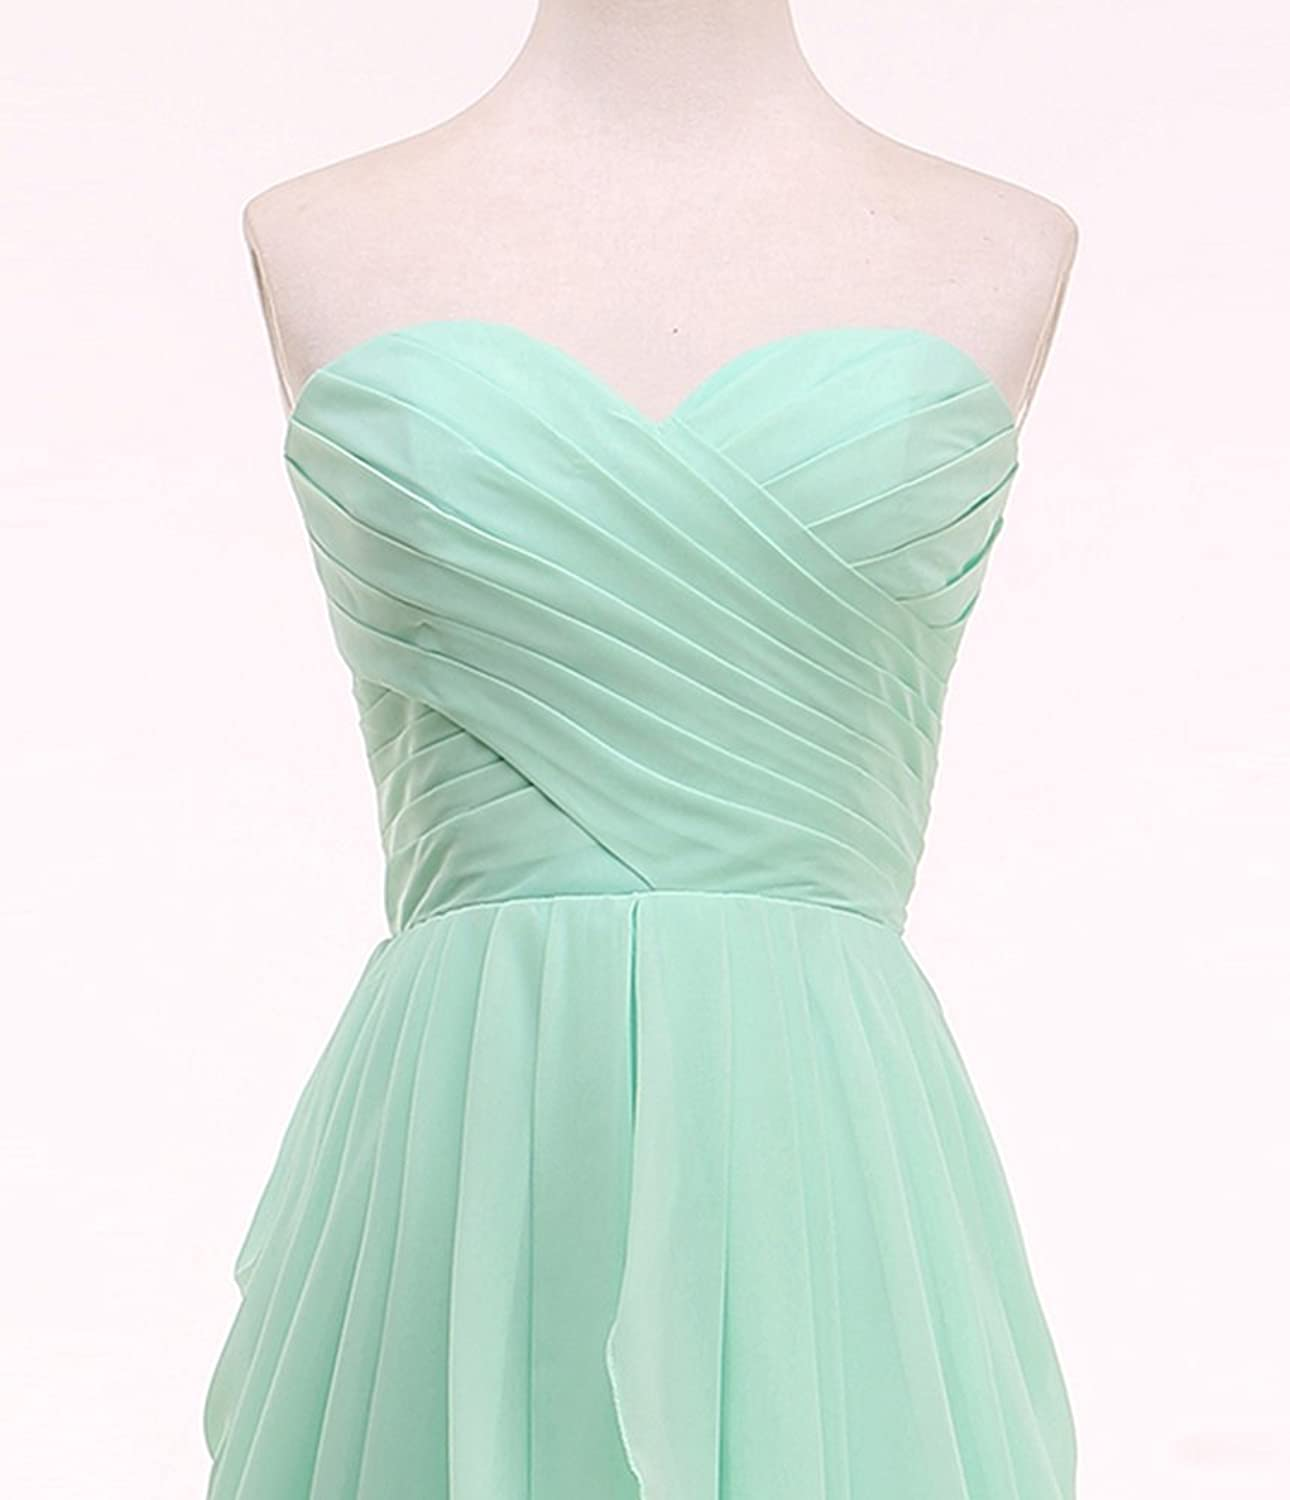 KekeHouse? Sweetheart Ruffles Knee Long Bridesmaid Dress Backless Short Prom Gown Pleated Mother Daughter Flower Girl's Dress